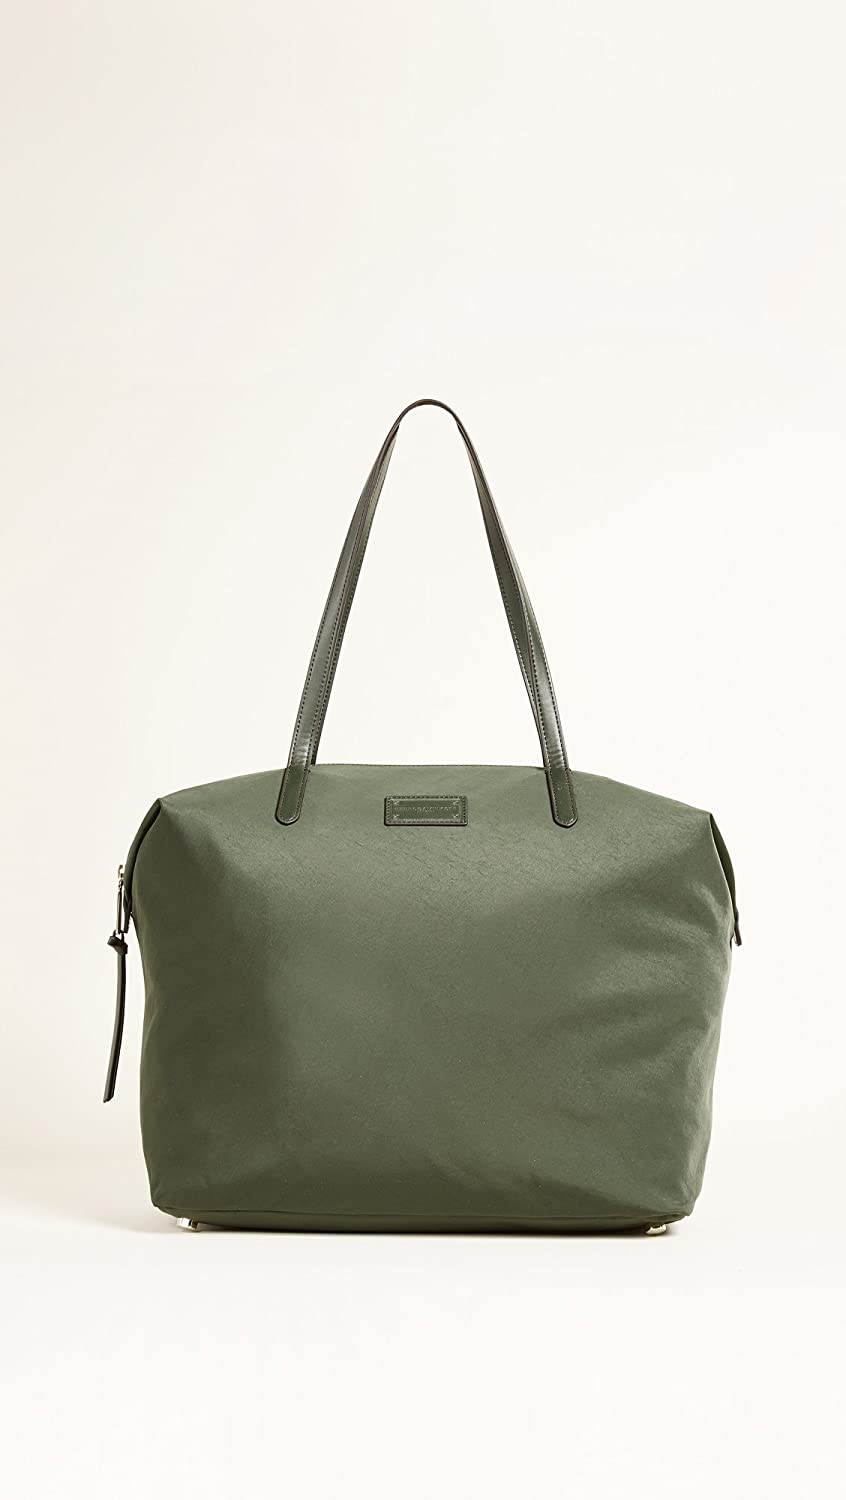 f42f1a41a Amazon.com: Rebecca Minkoff Women's Nylon Tote, Army, One Size: Shoes